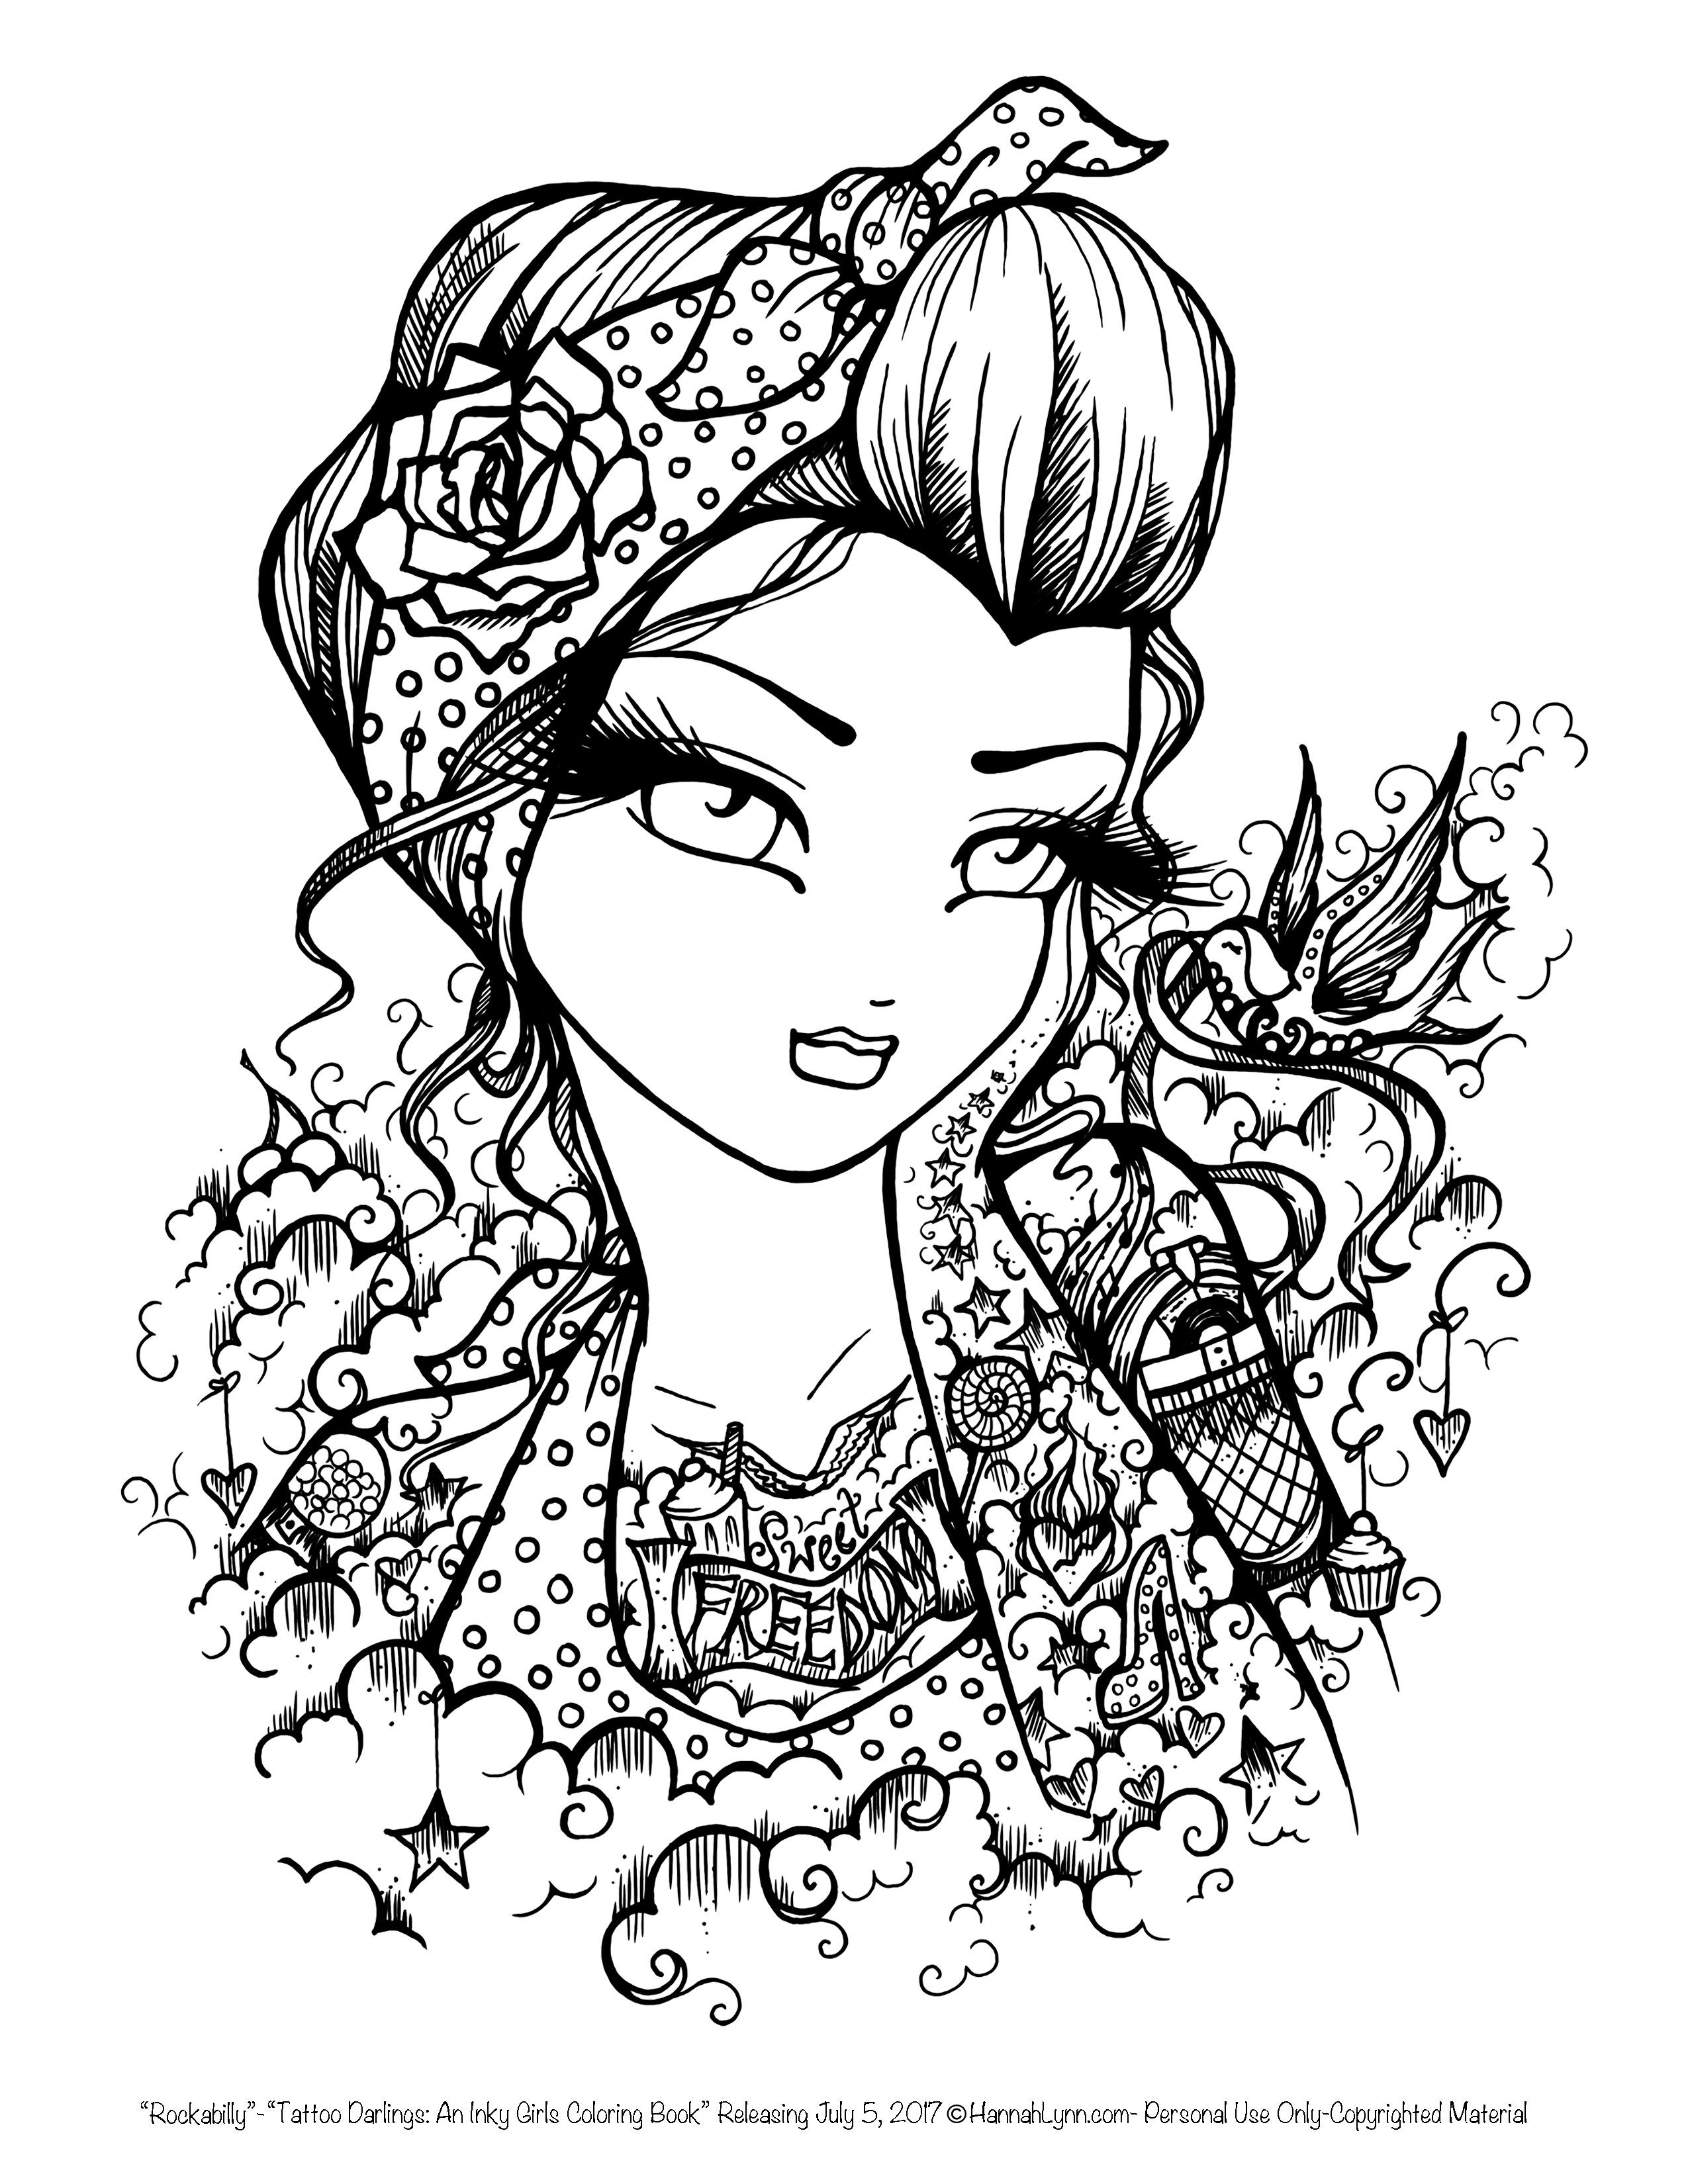 Tattoo Darlings FREE Sample coloring page Rockabilly Girl by